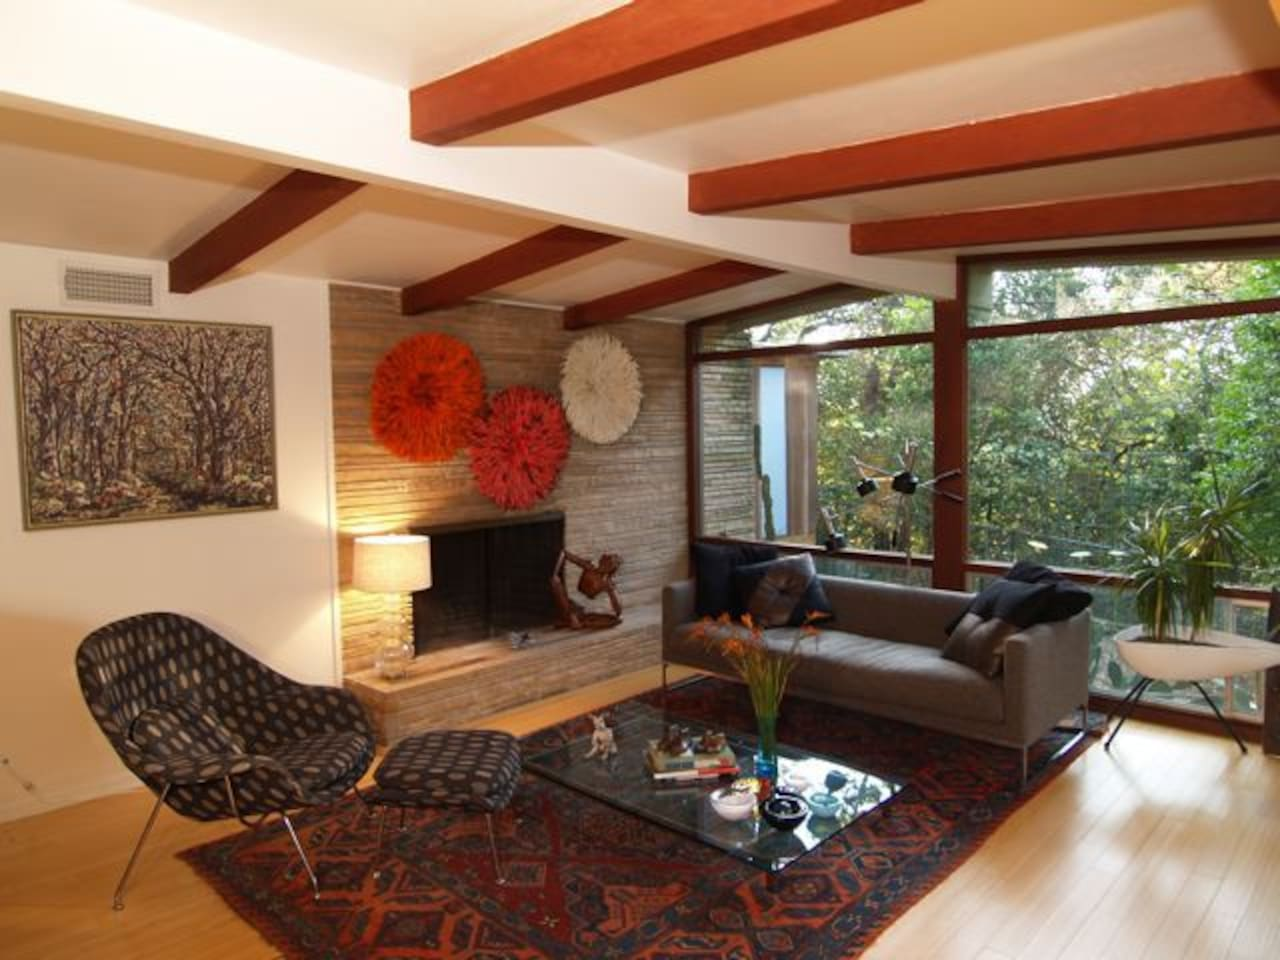 Midcentury, designed by AD Stenger, a few blocks from Barton Springs